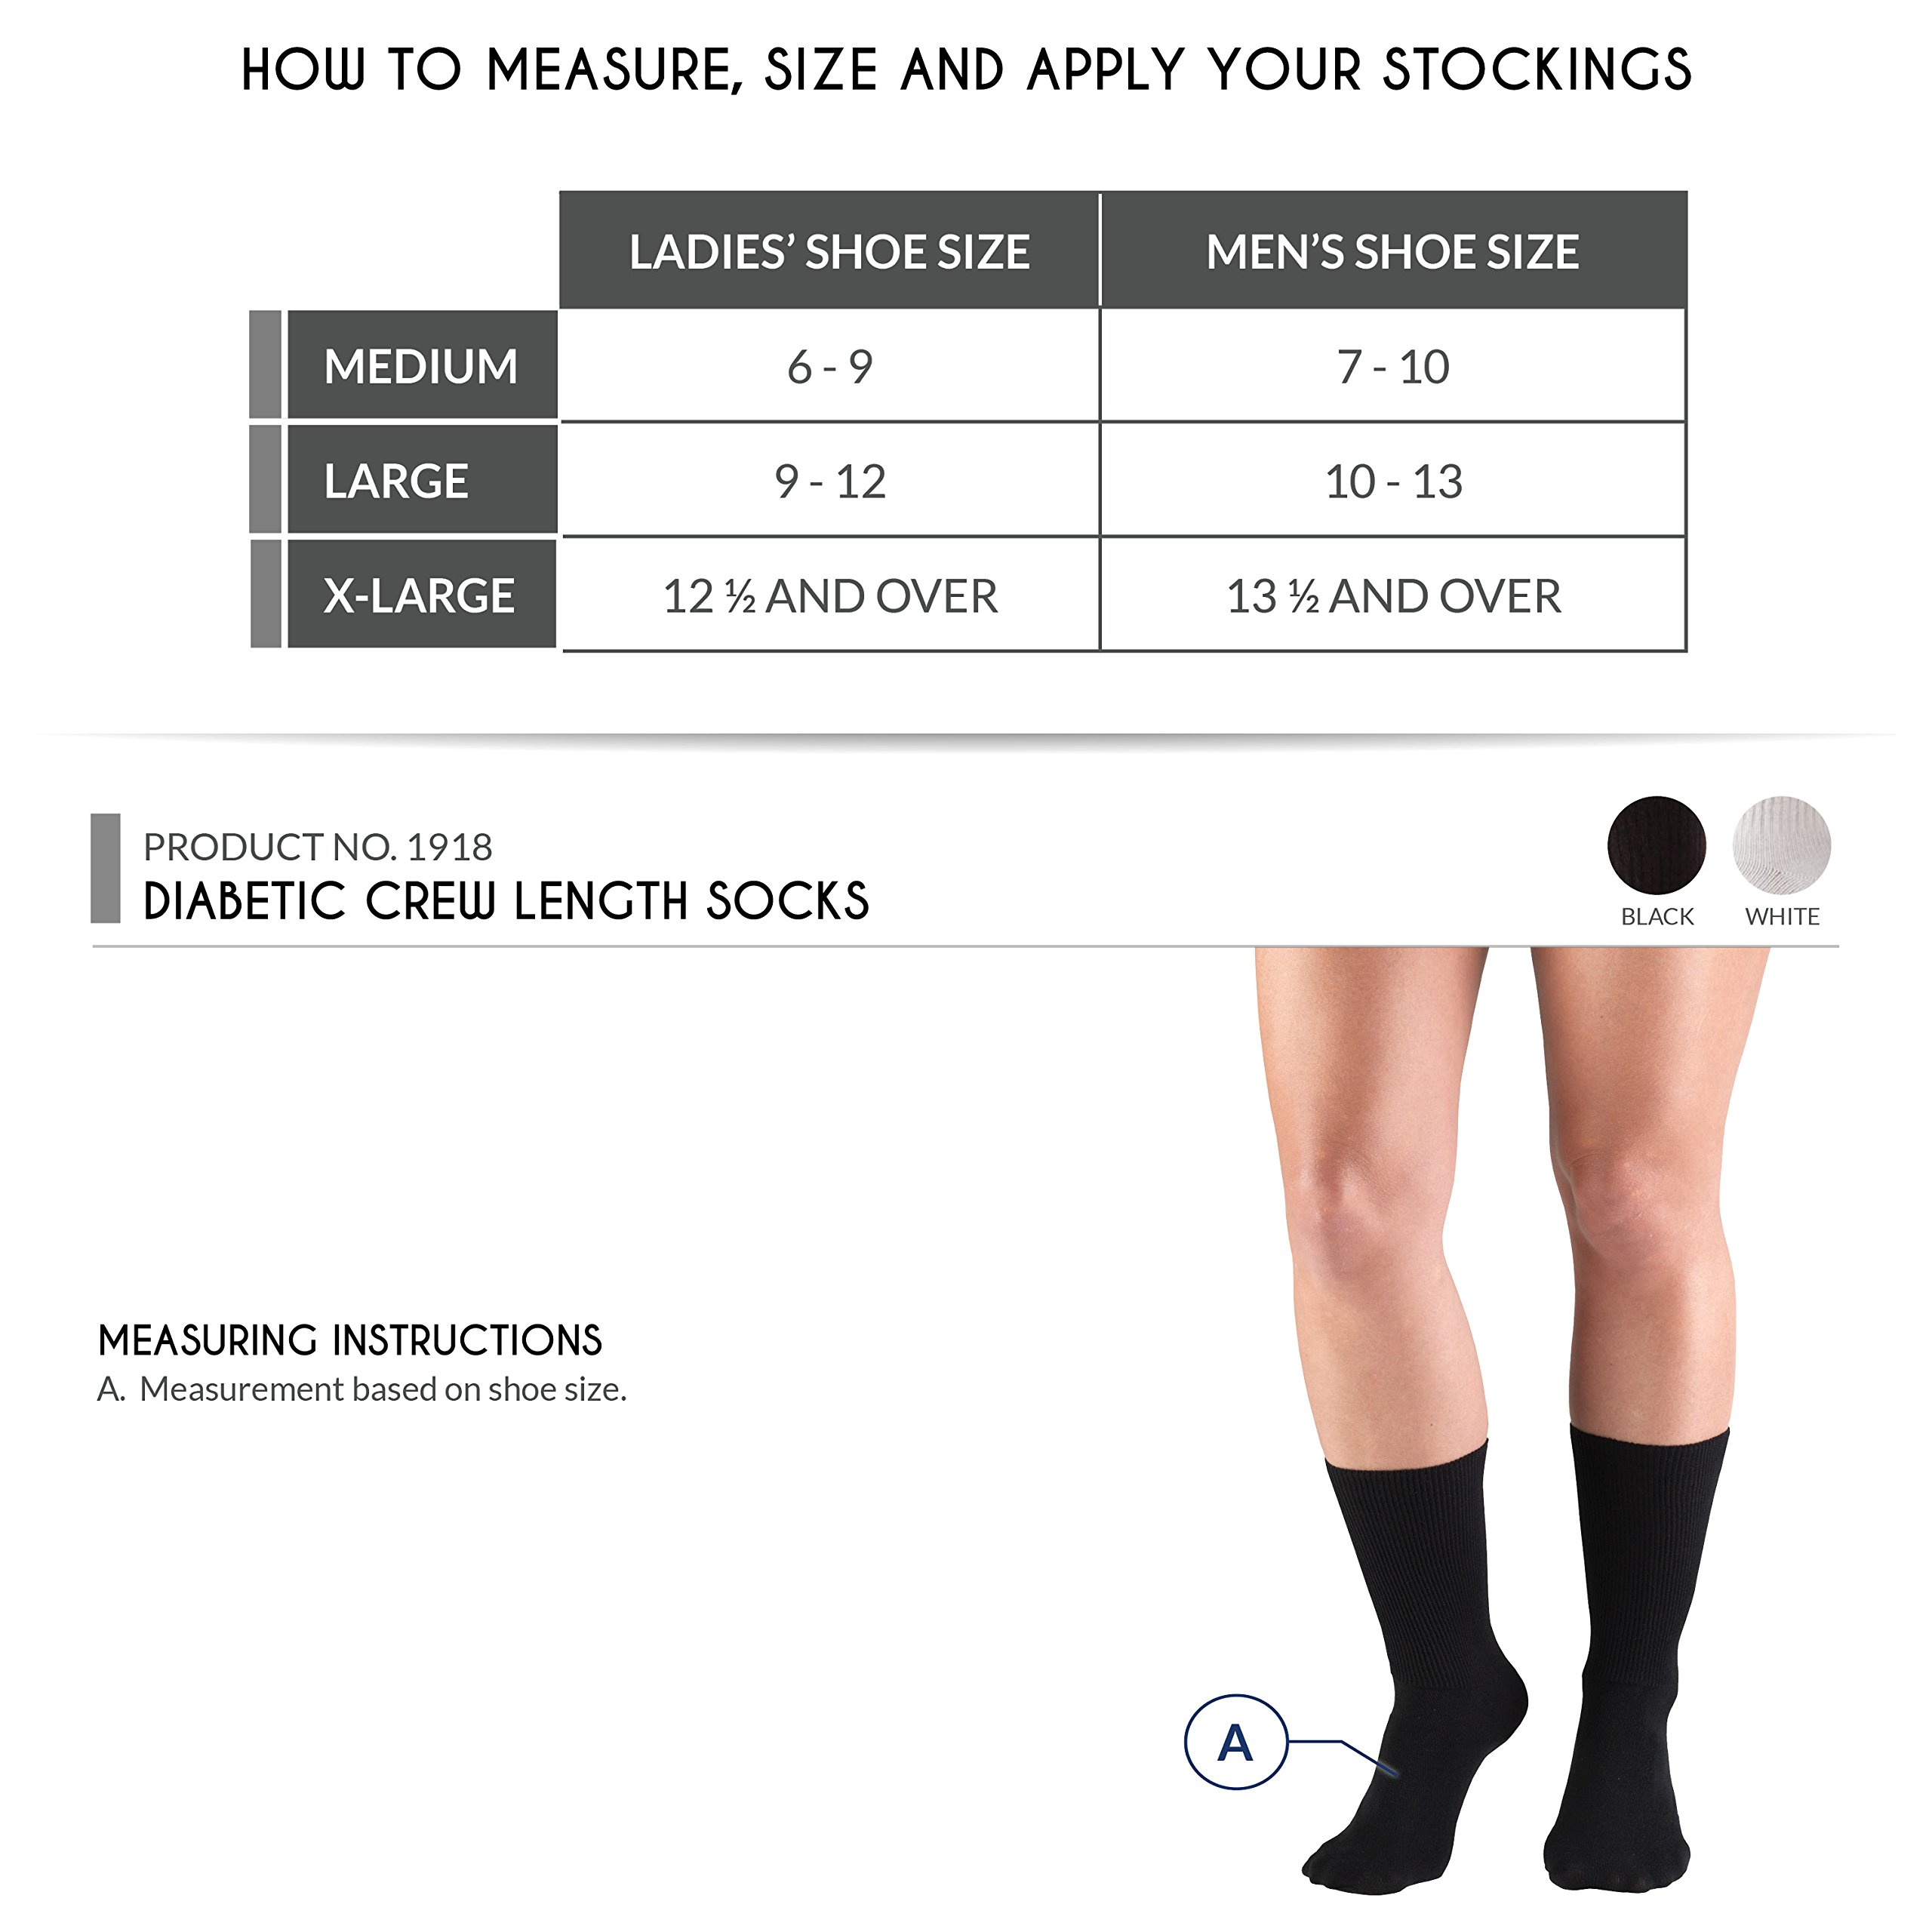 Truform Diabetic Socks Loose Fit, Medical Style, 3 Pairs, White by Truform (Image #3)